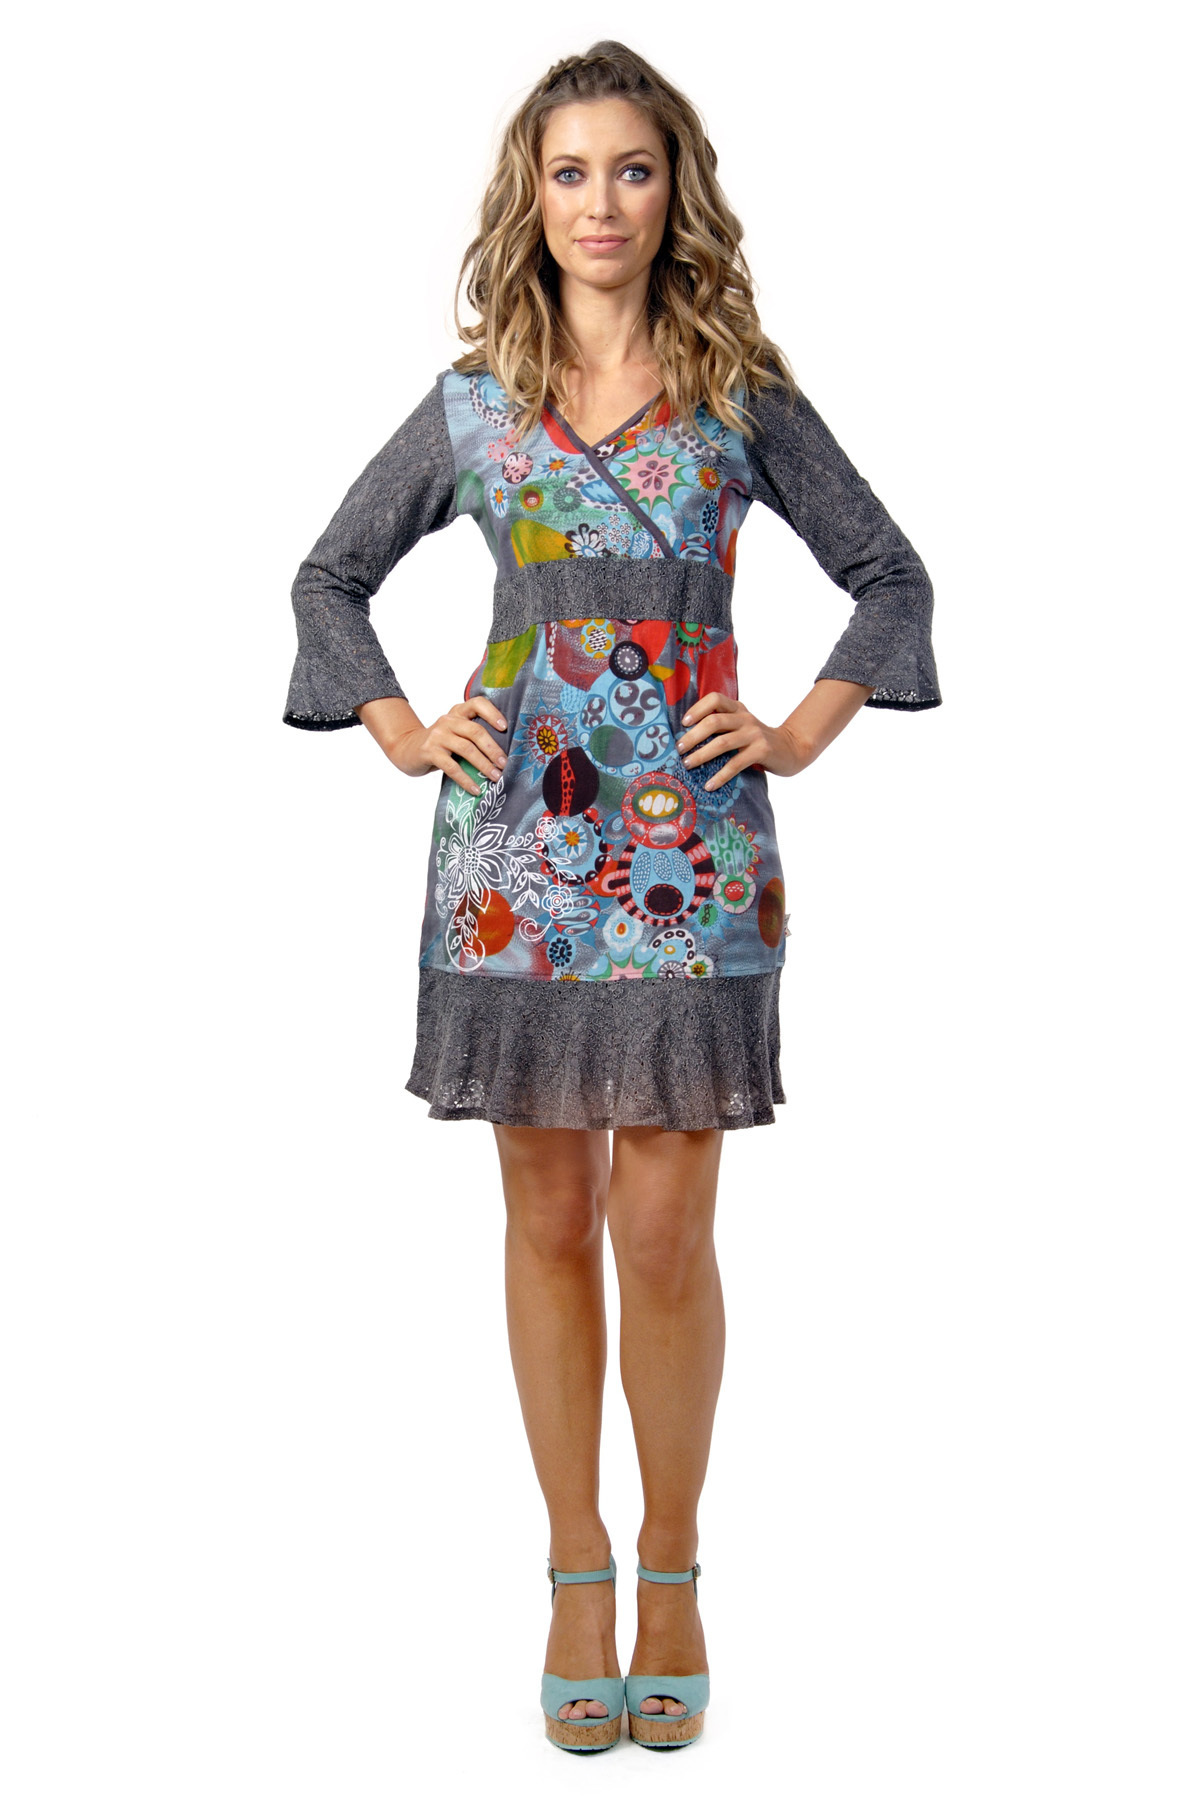 Savage Culture: Arabesque Flower Noa Dress with Tulip Sleeves SAVAGE_30016